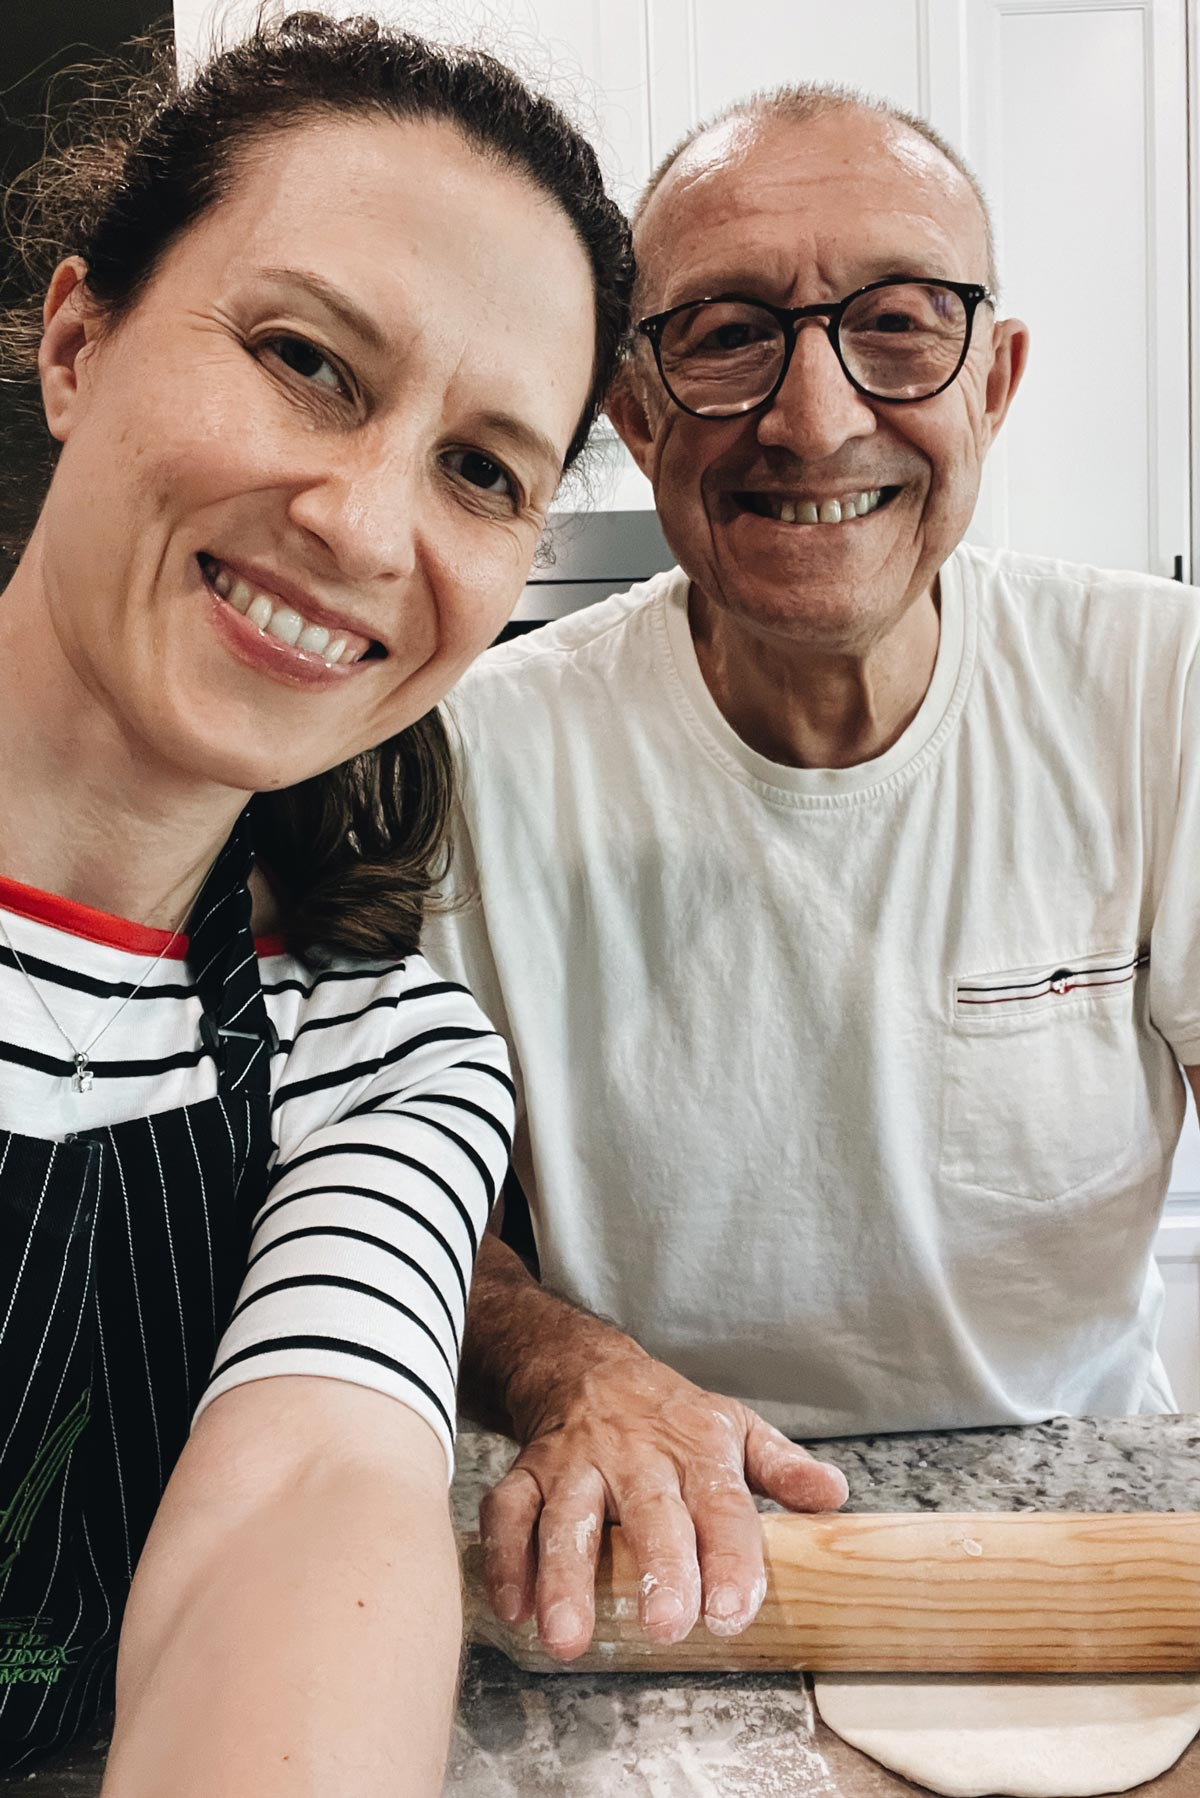 Cooking with my dad